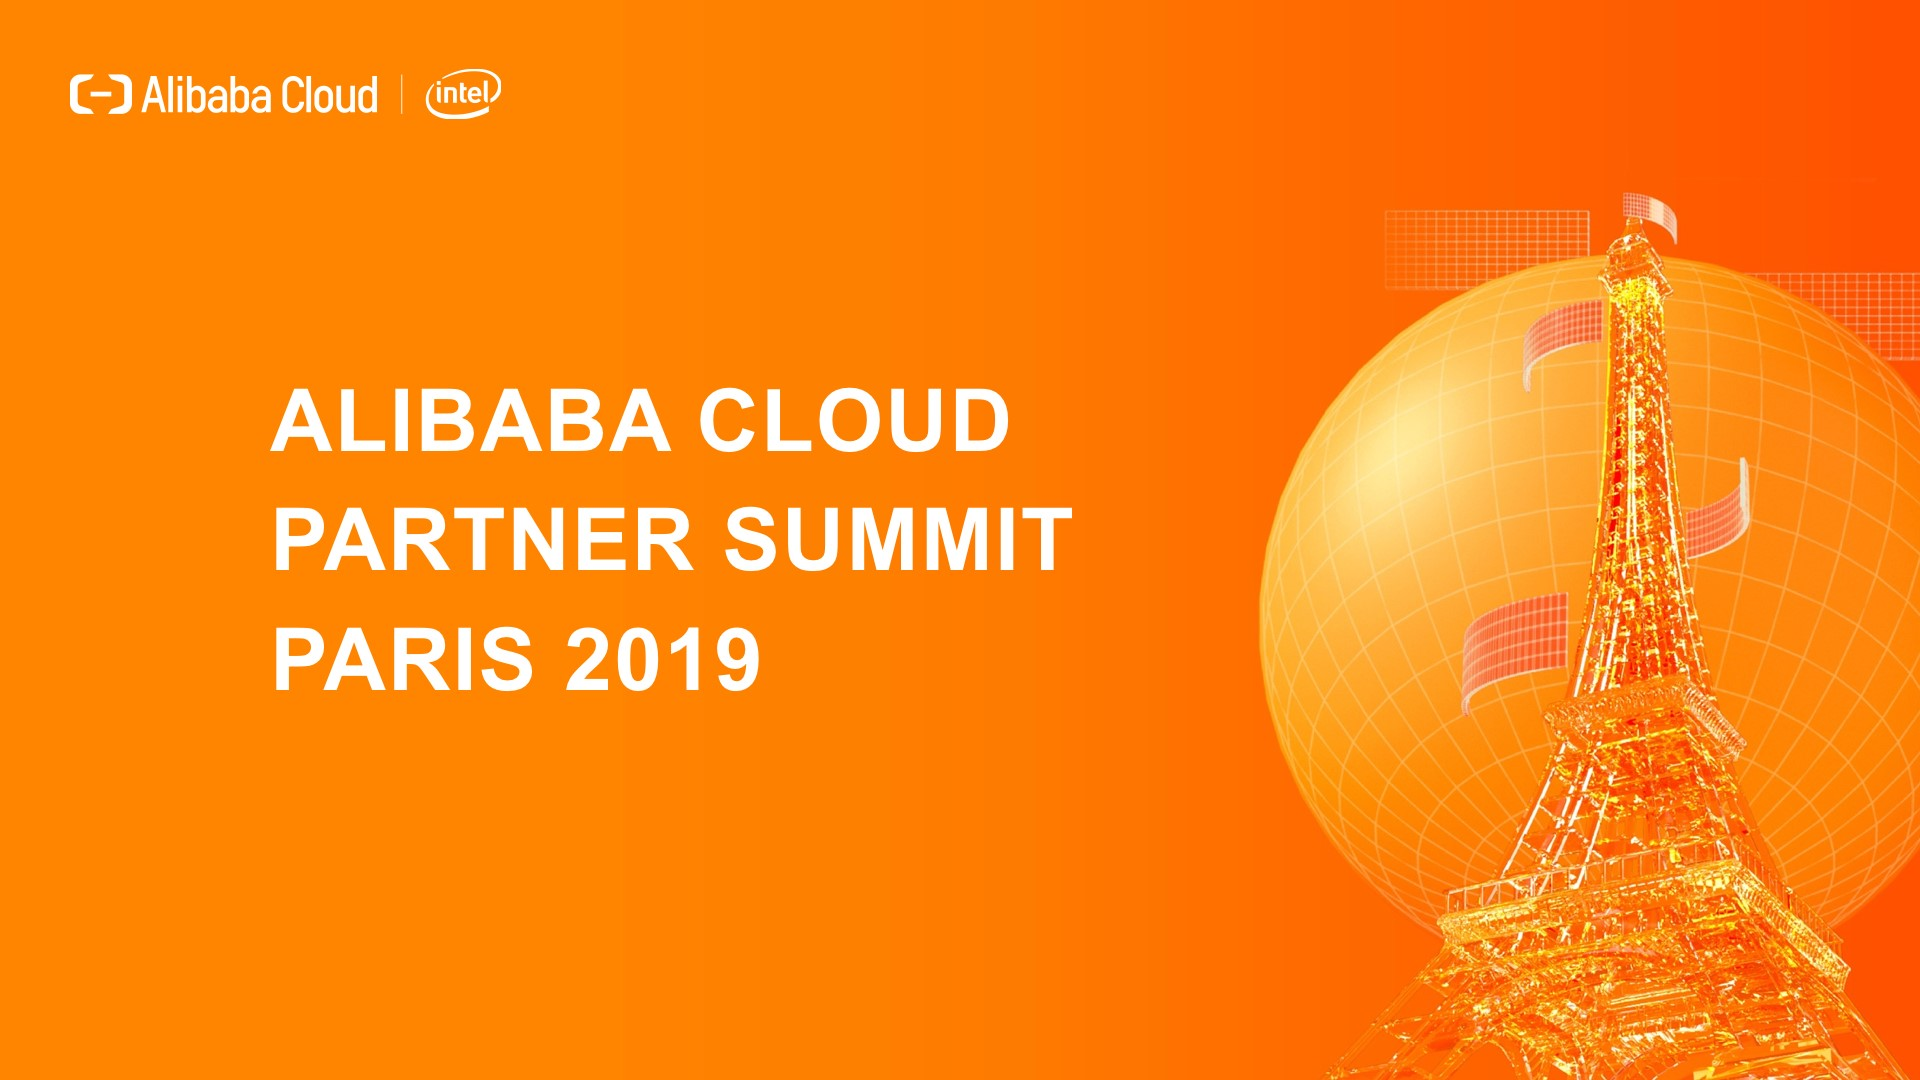 Alibaba Cloud Partner Summit Paris 2019